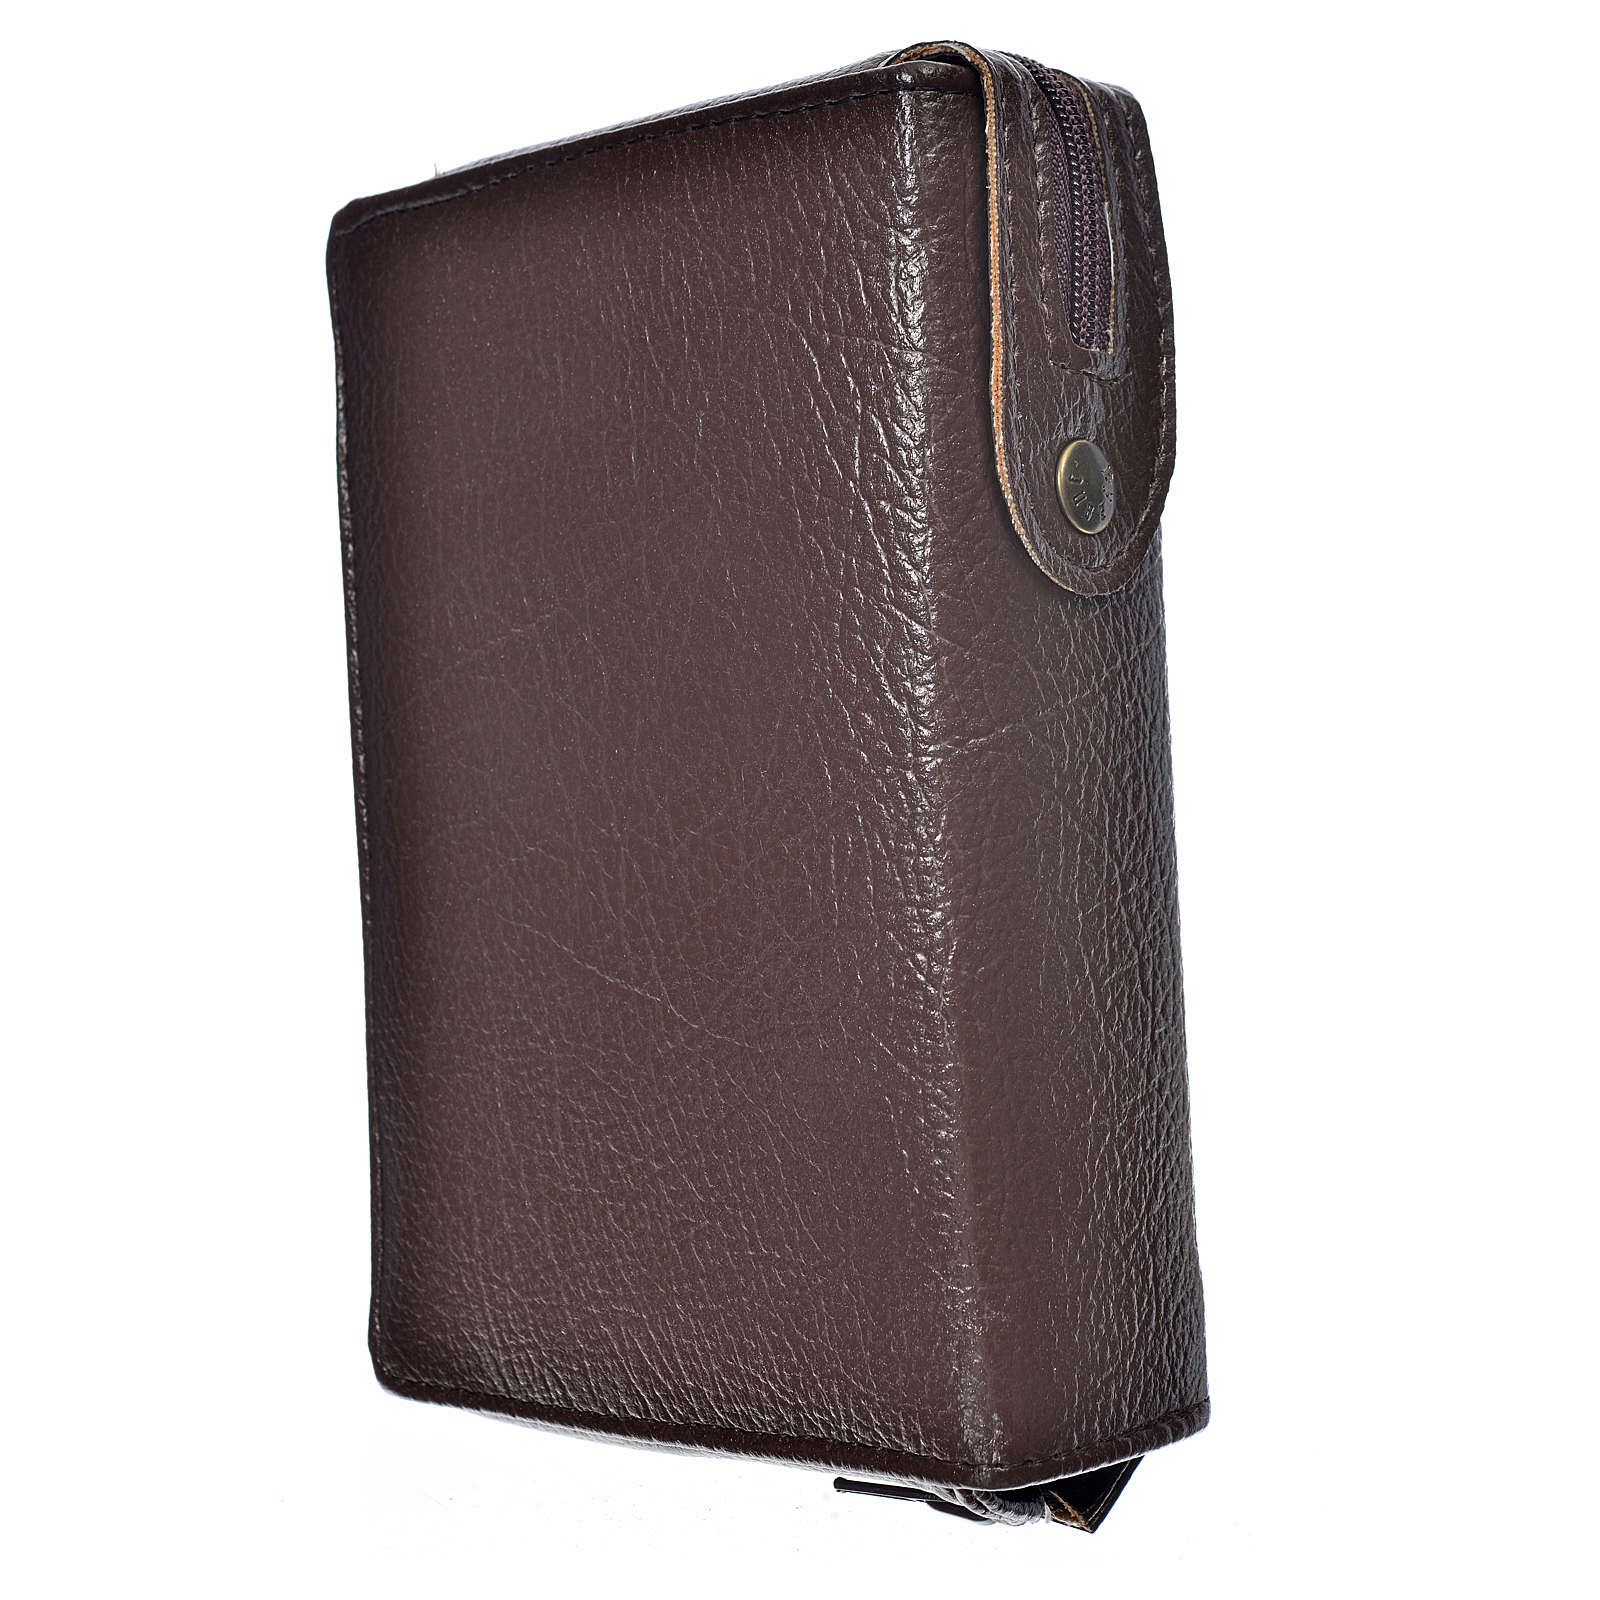 Divine office cover in dark brown bonded leather 4